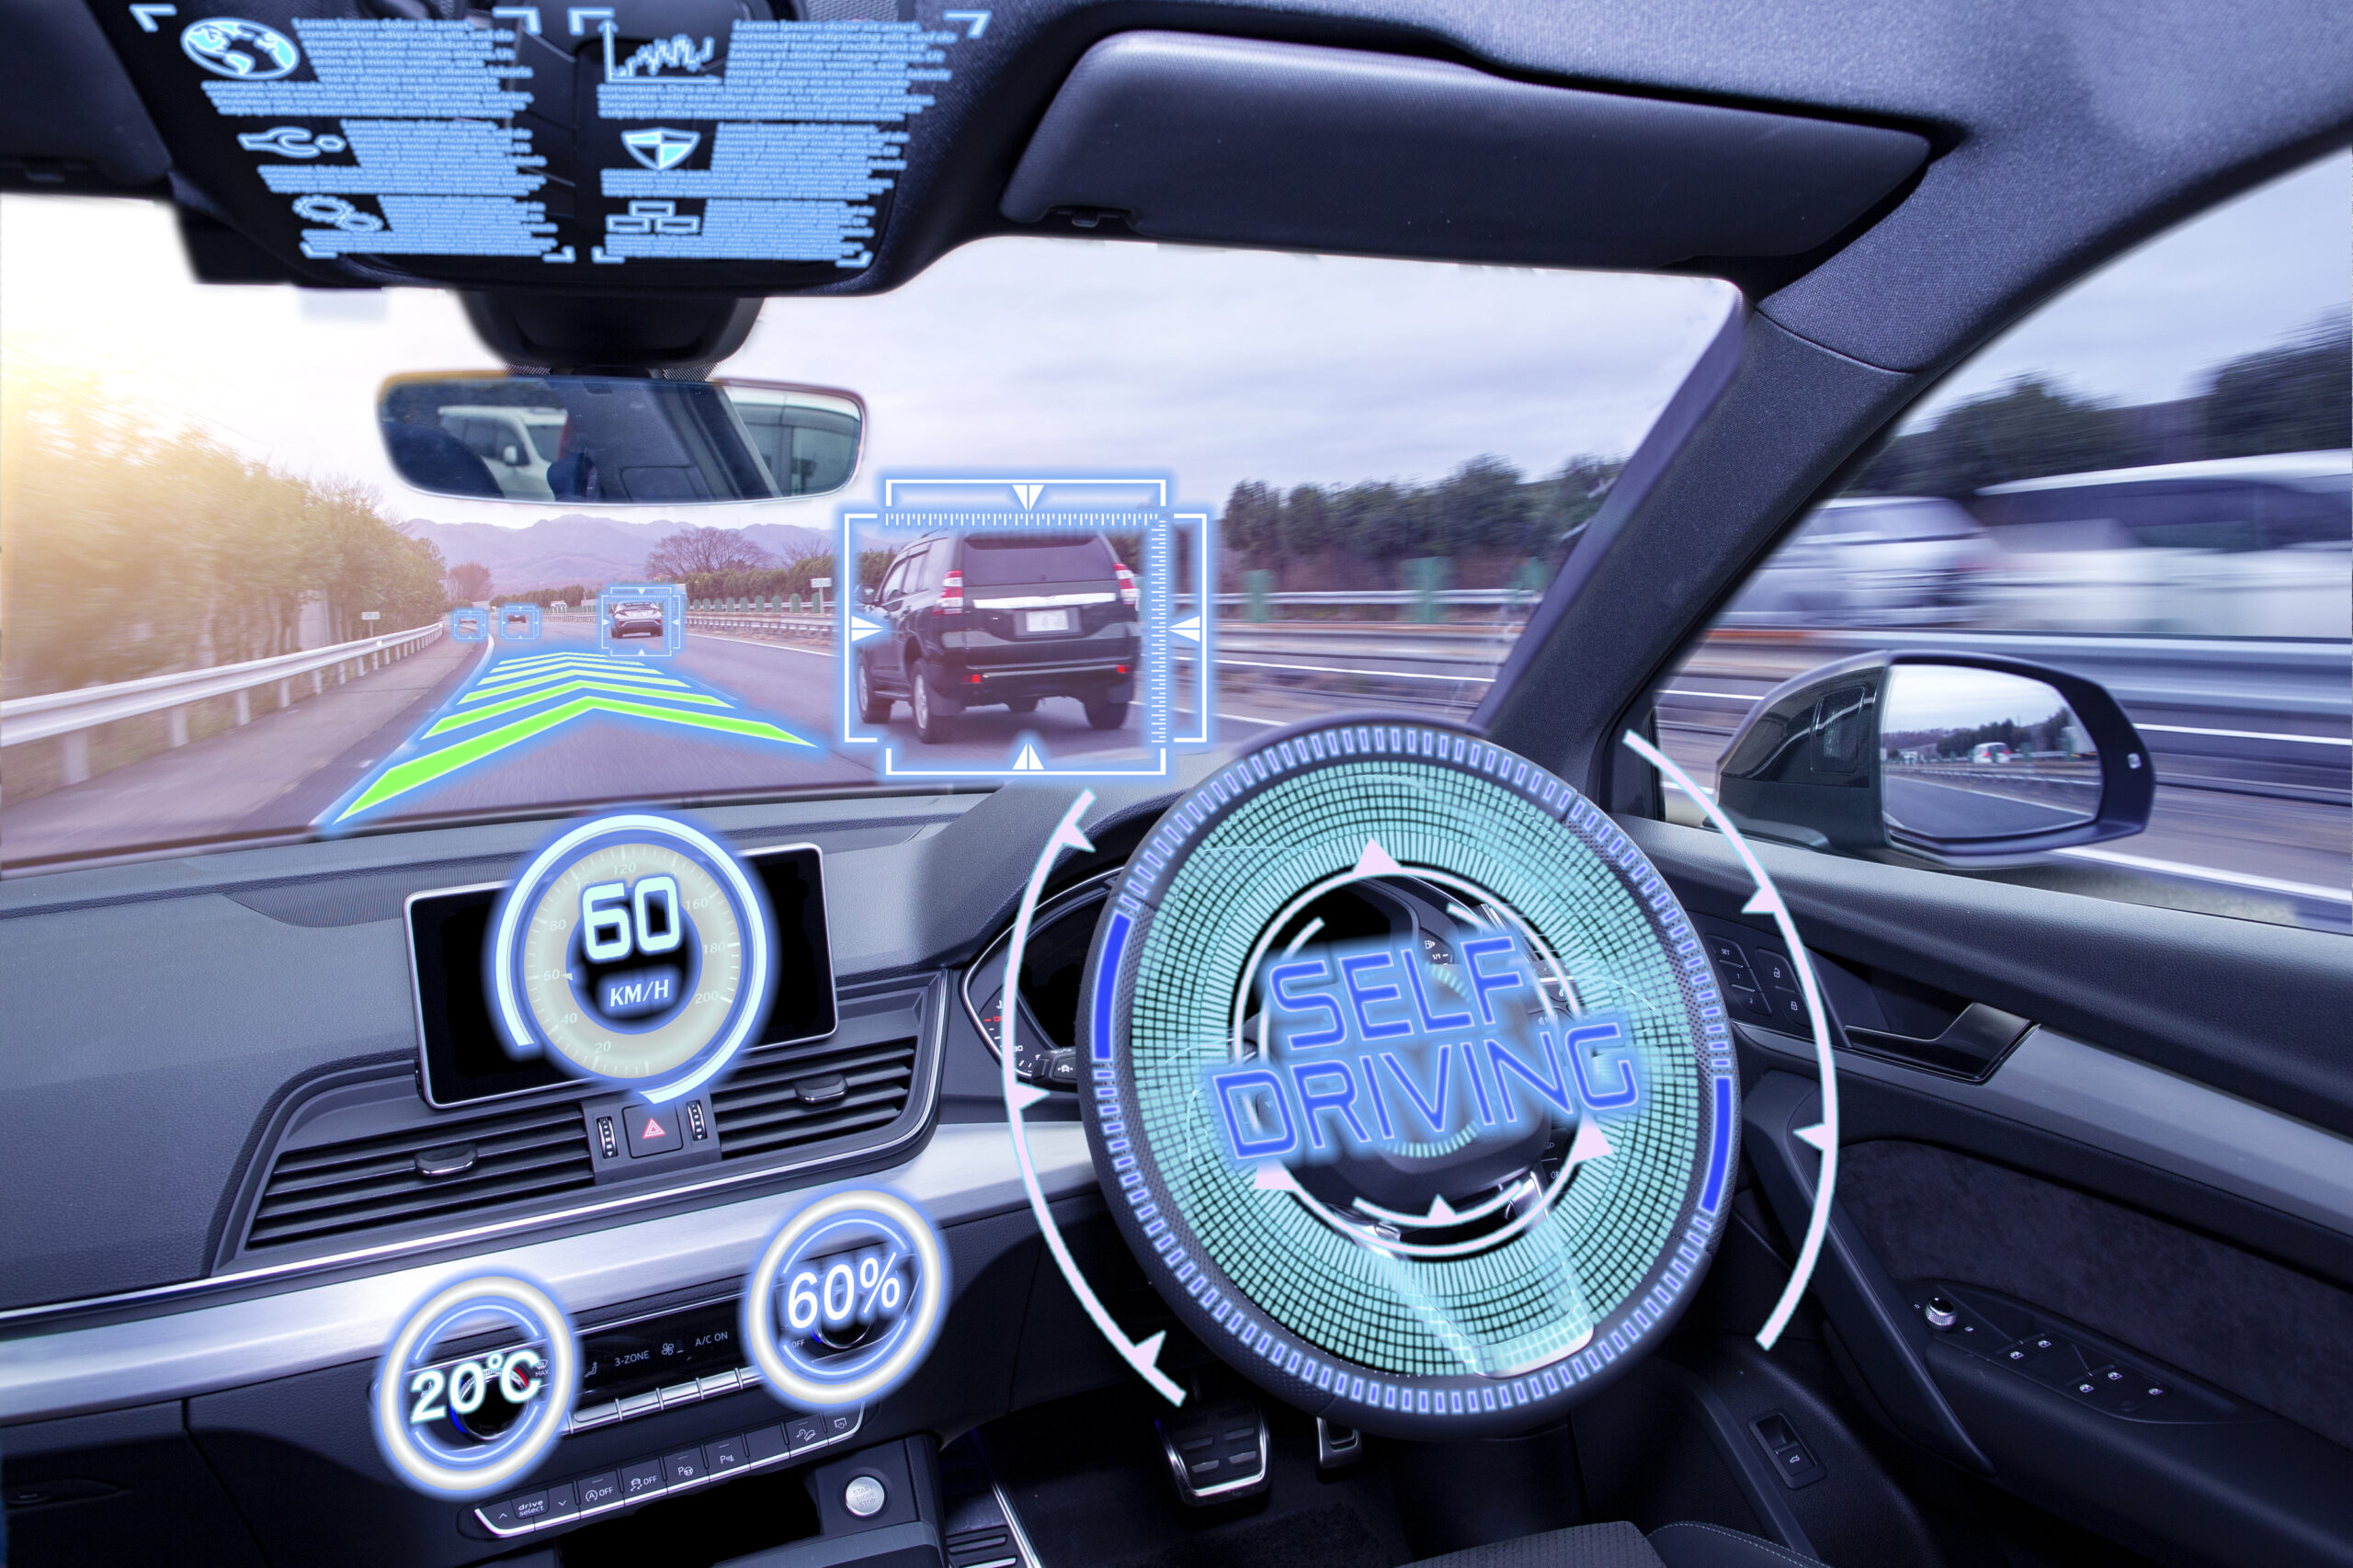 AI, Hands-Free Driving, self-driving cars, car, autopilot, accidents, vehicles